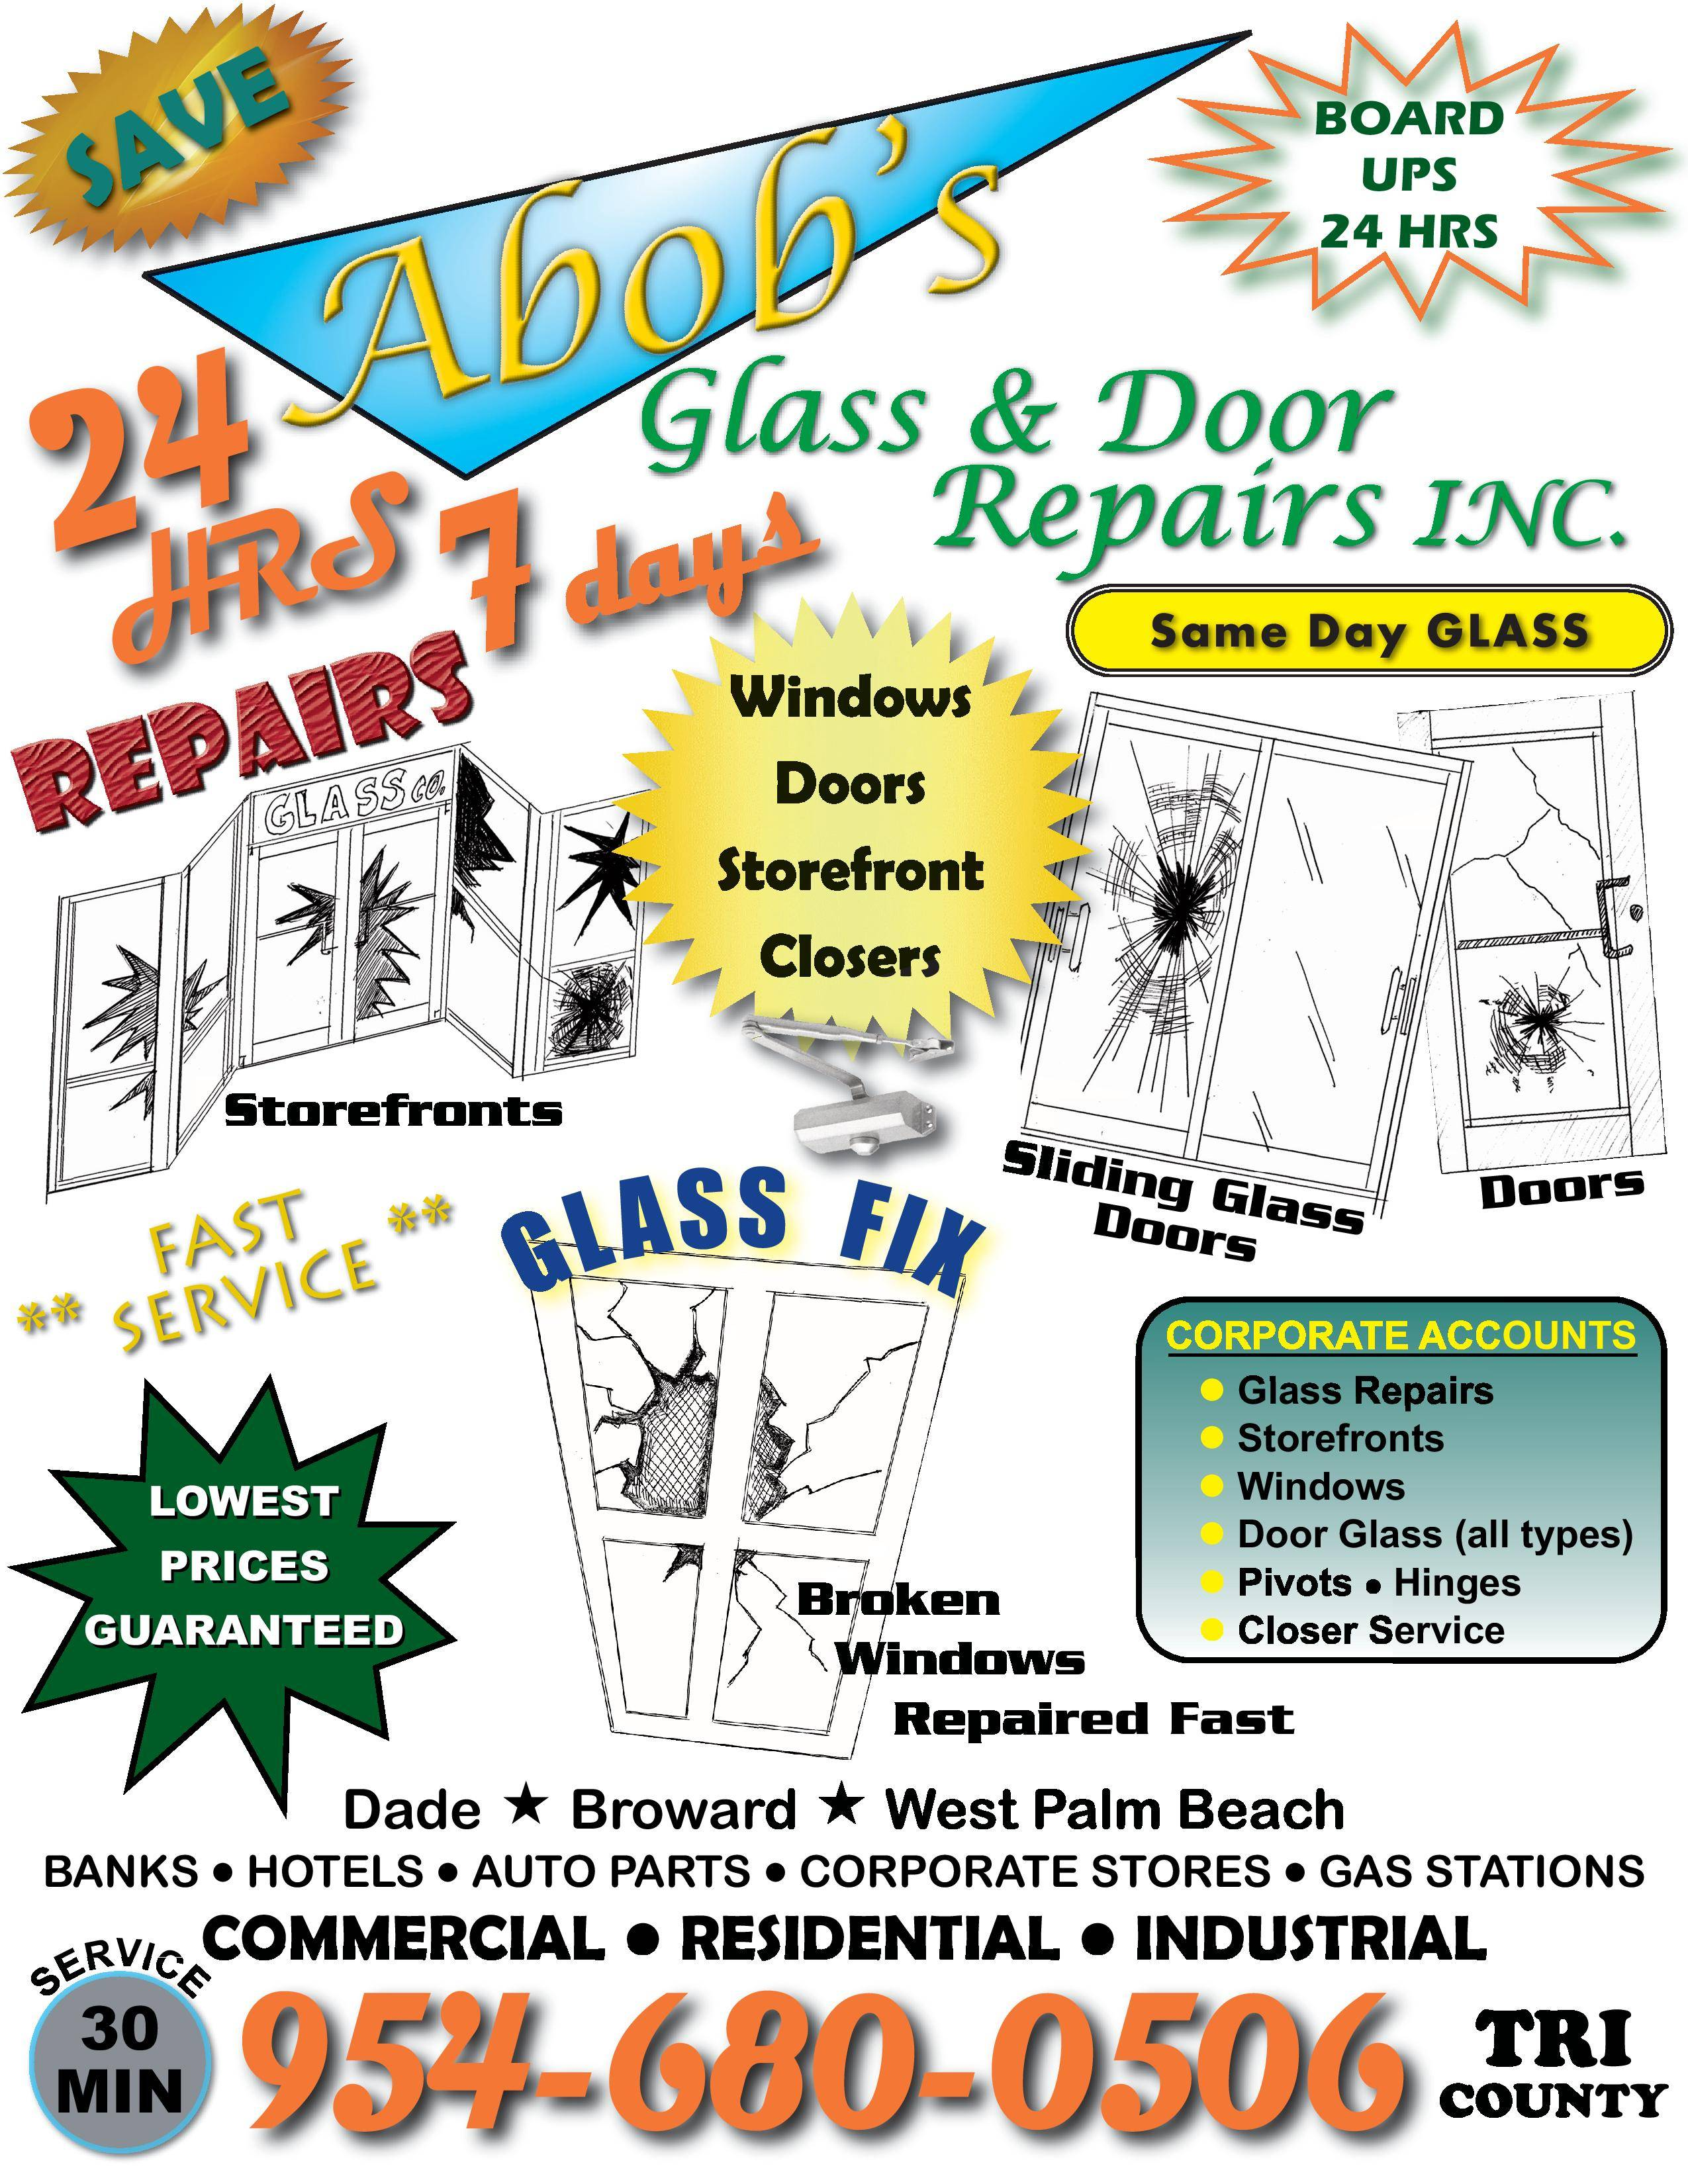 Abobs Glass Door Repairslayout 1 Pdf Page 001 A Bobs Glass Repair